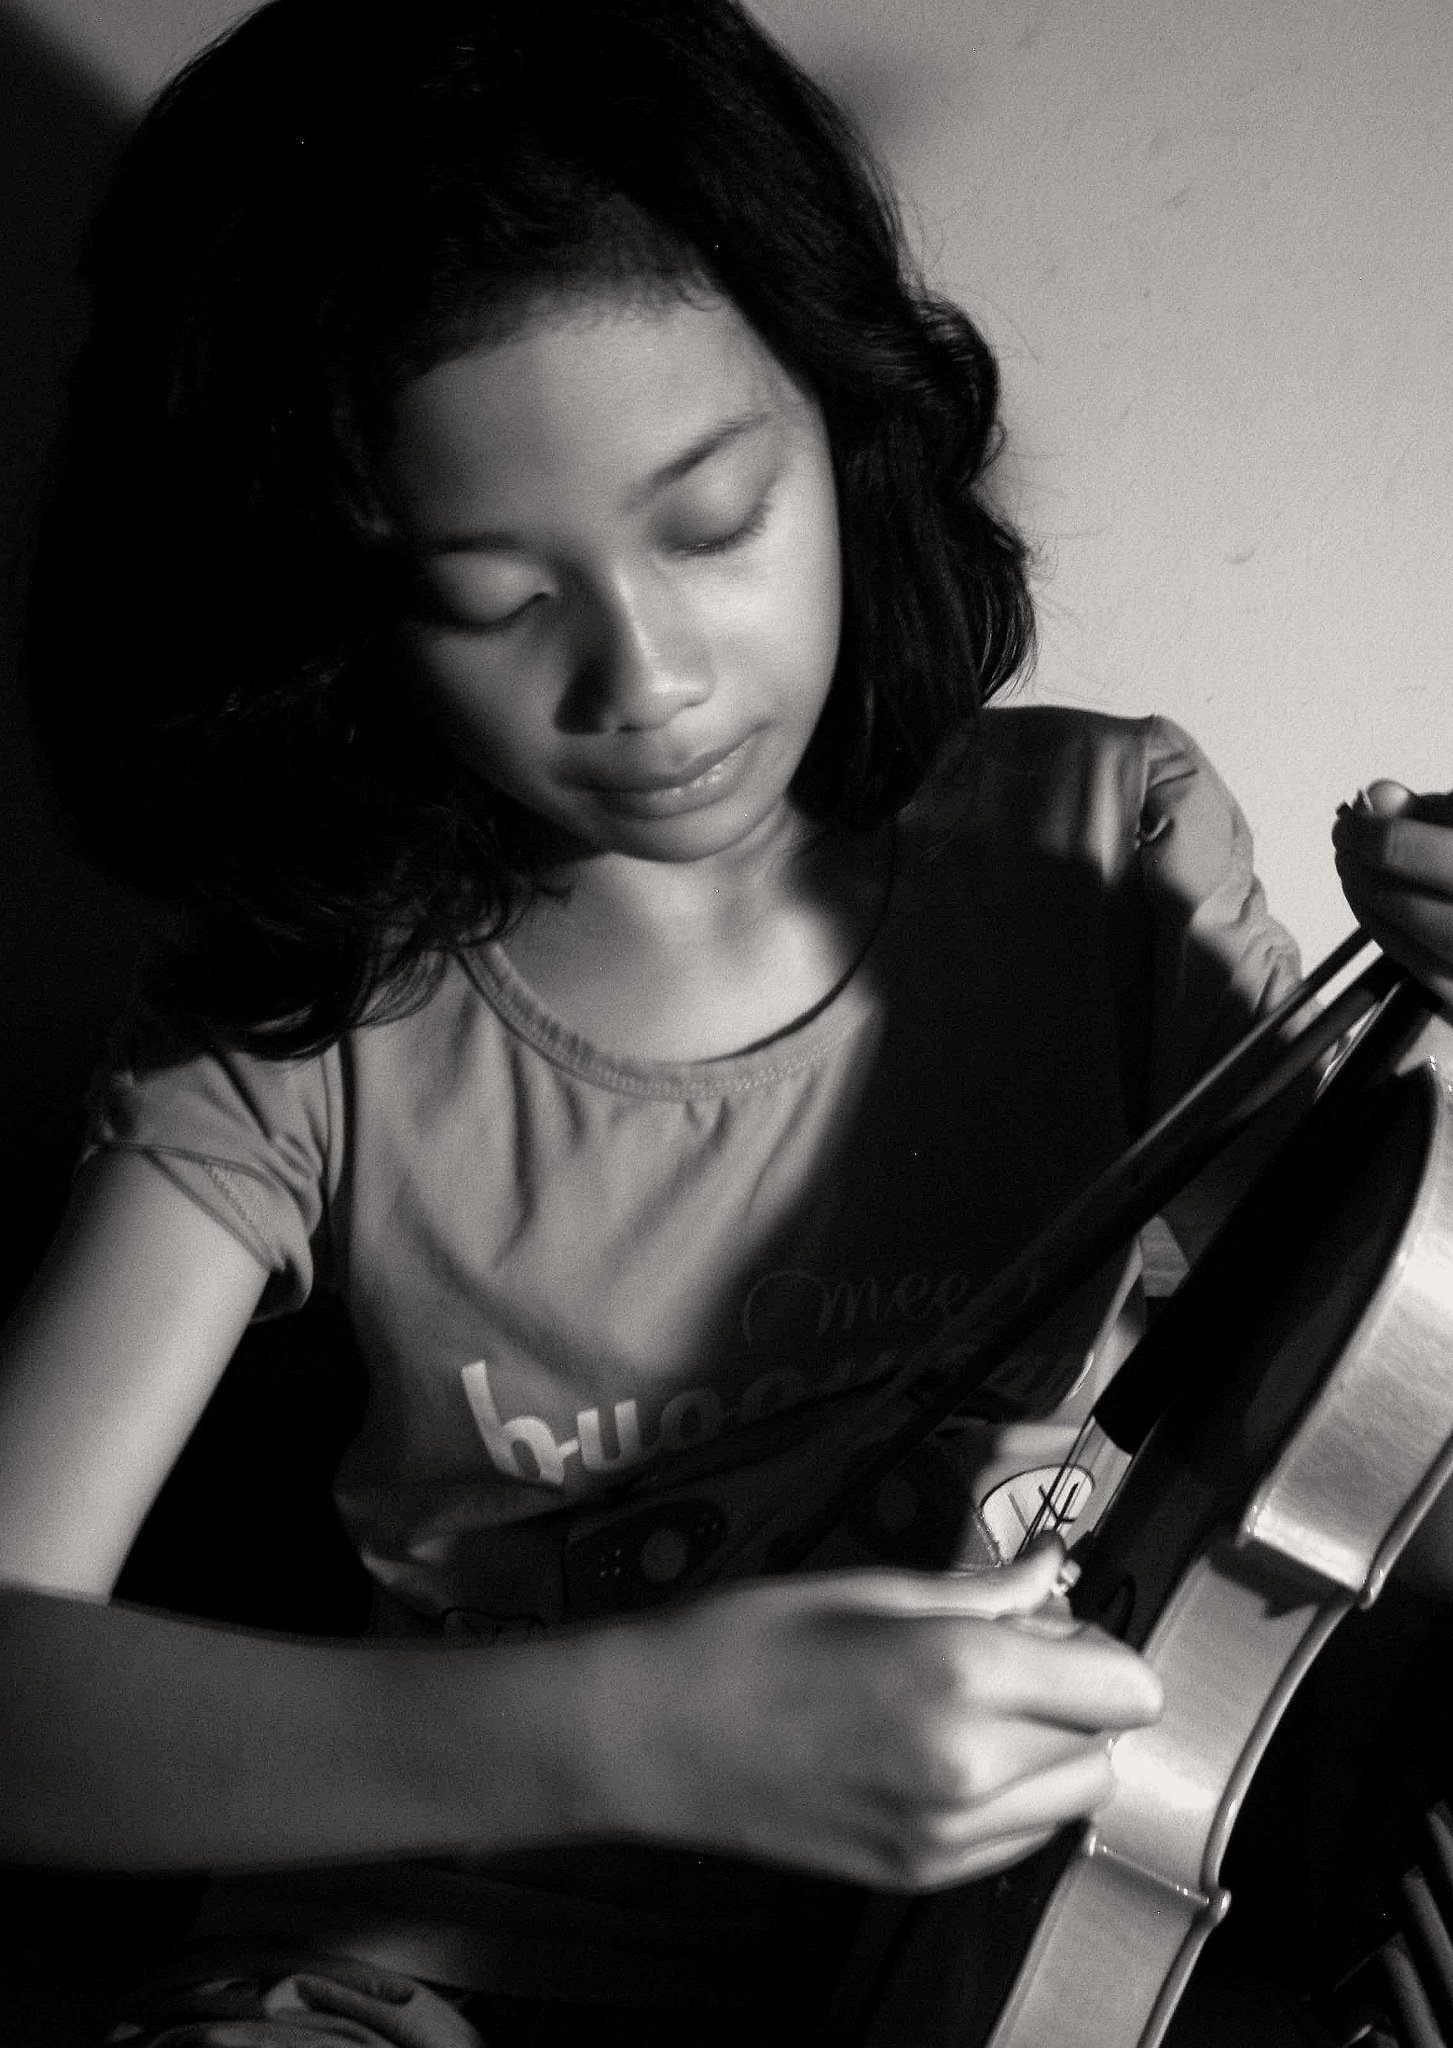 Sadness of her broken violin by wisnu purnomo sidhi